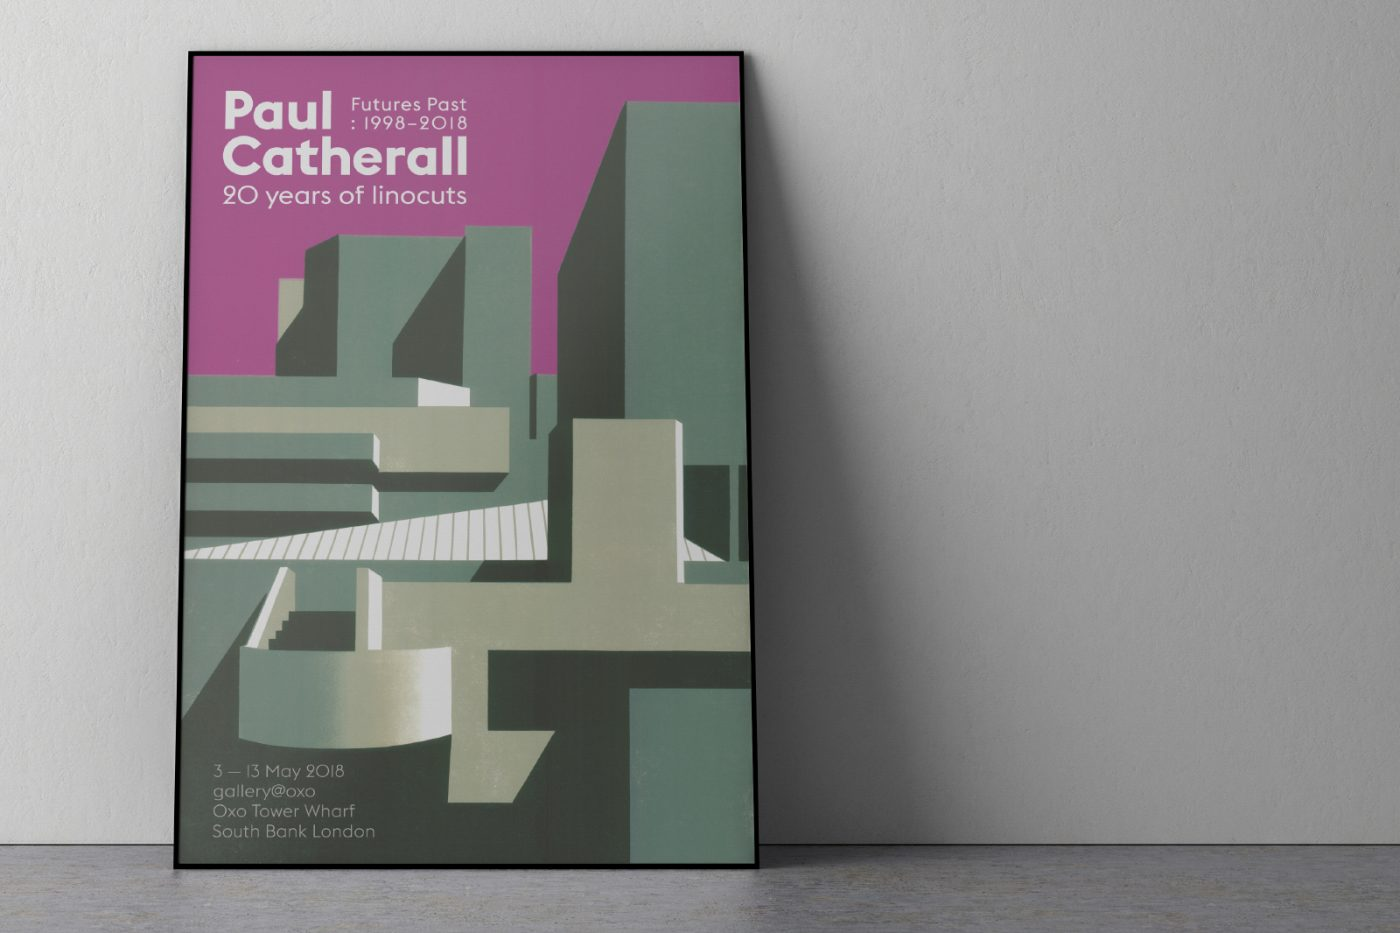 Paul Catherall | Futures Past